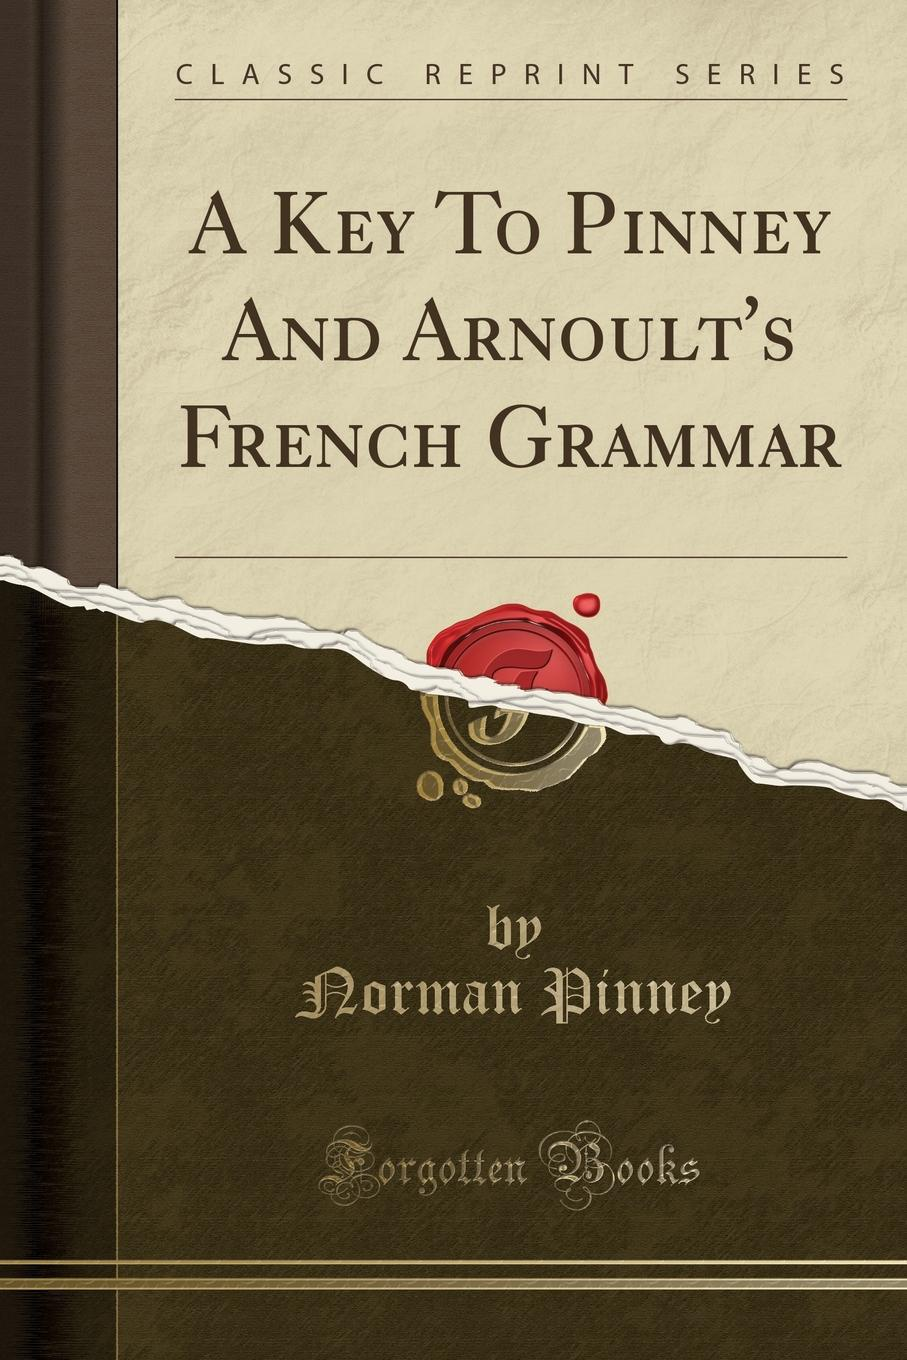 Norman Pinney A Key To Pinney And Arnoult.s French Grammar (Classic Reprint) norman pinney a key to pinney and arnoult s french grammar classic reprint